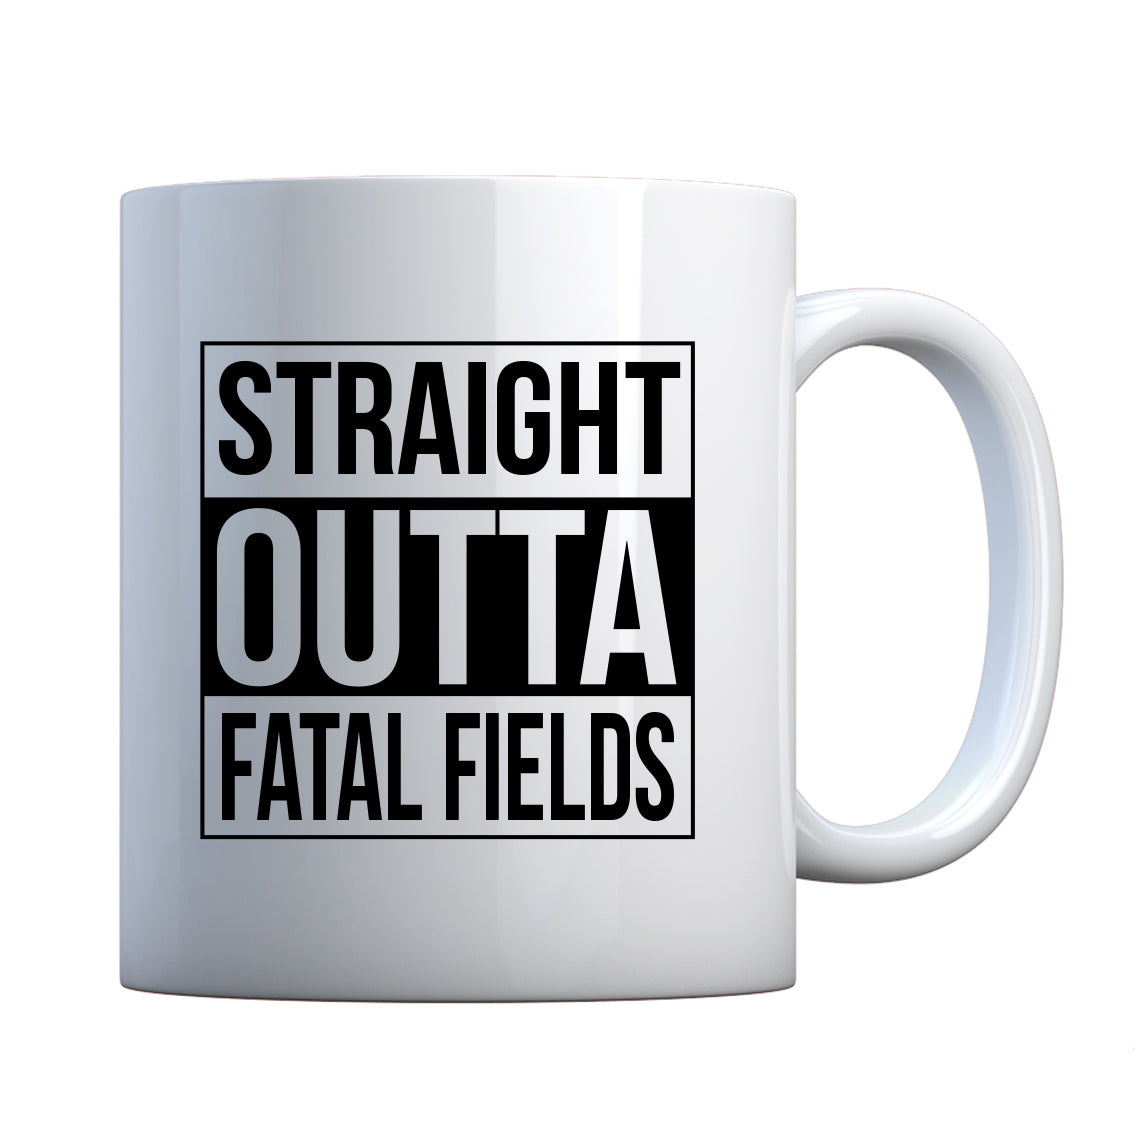 Mug Straight Outta Fatal Fields Ceramic Gift Mug